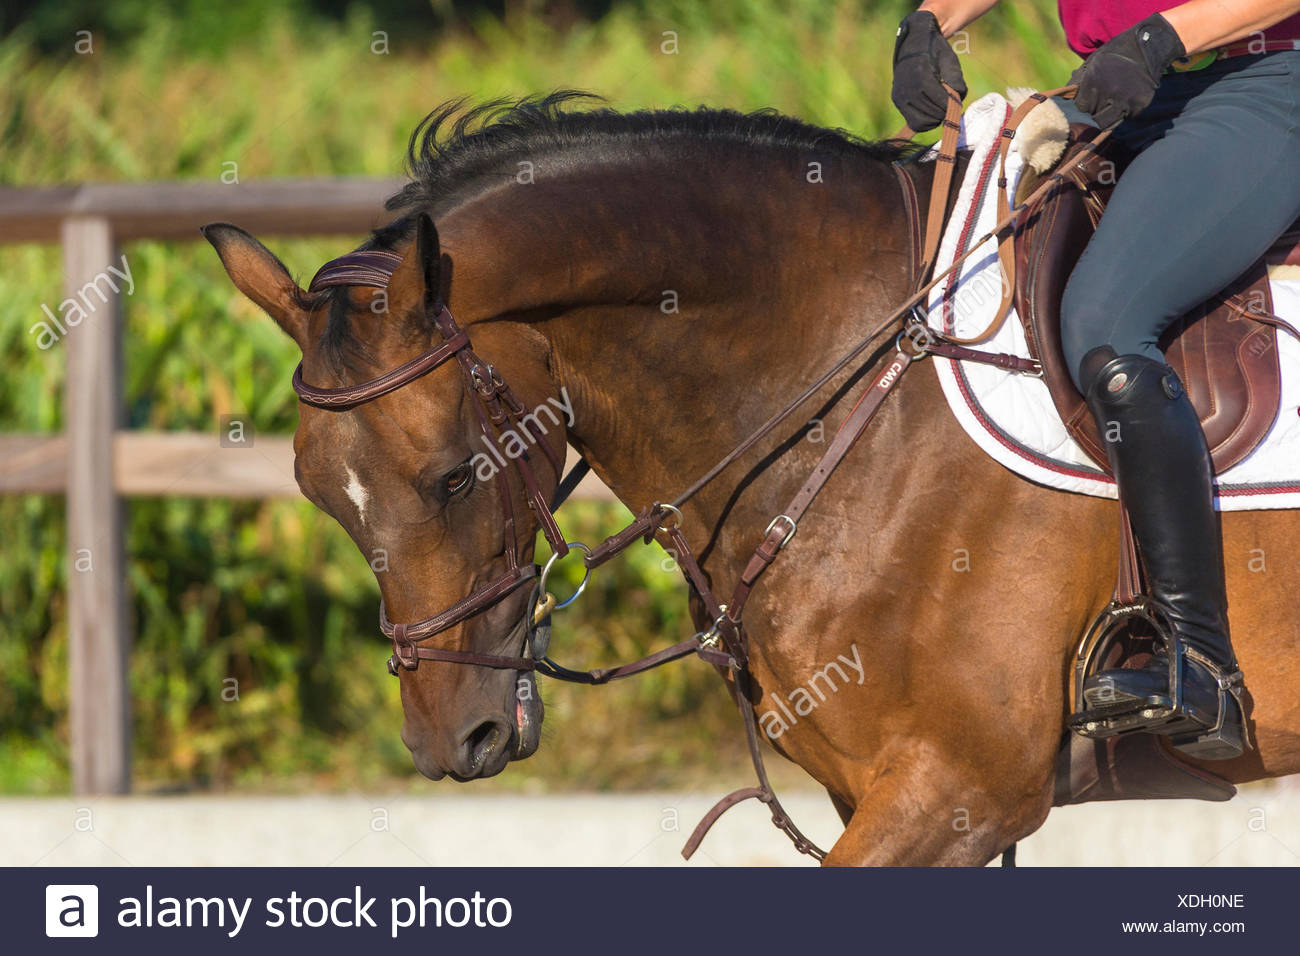 Dutch Warmblood. Rider schooling a bay horse, communicating with reins. Netherlands - Stock Image